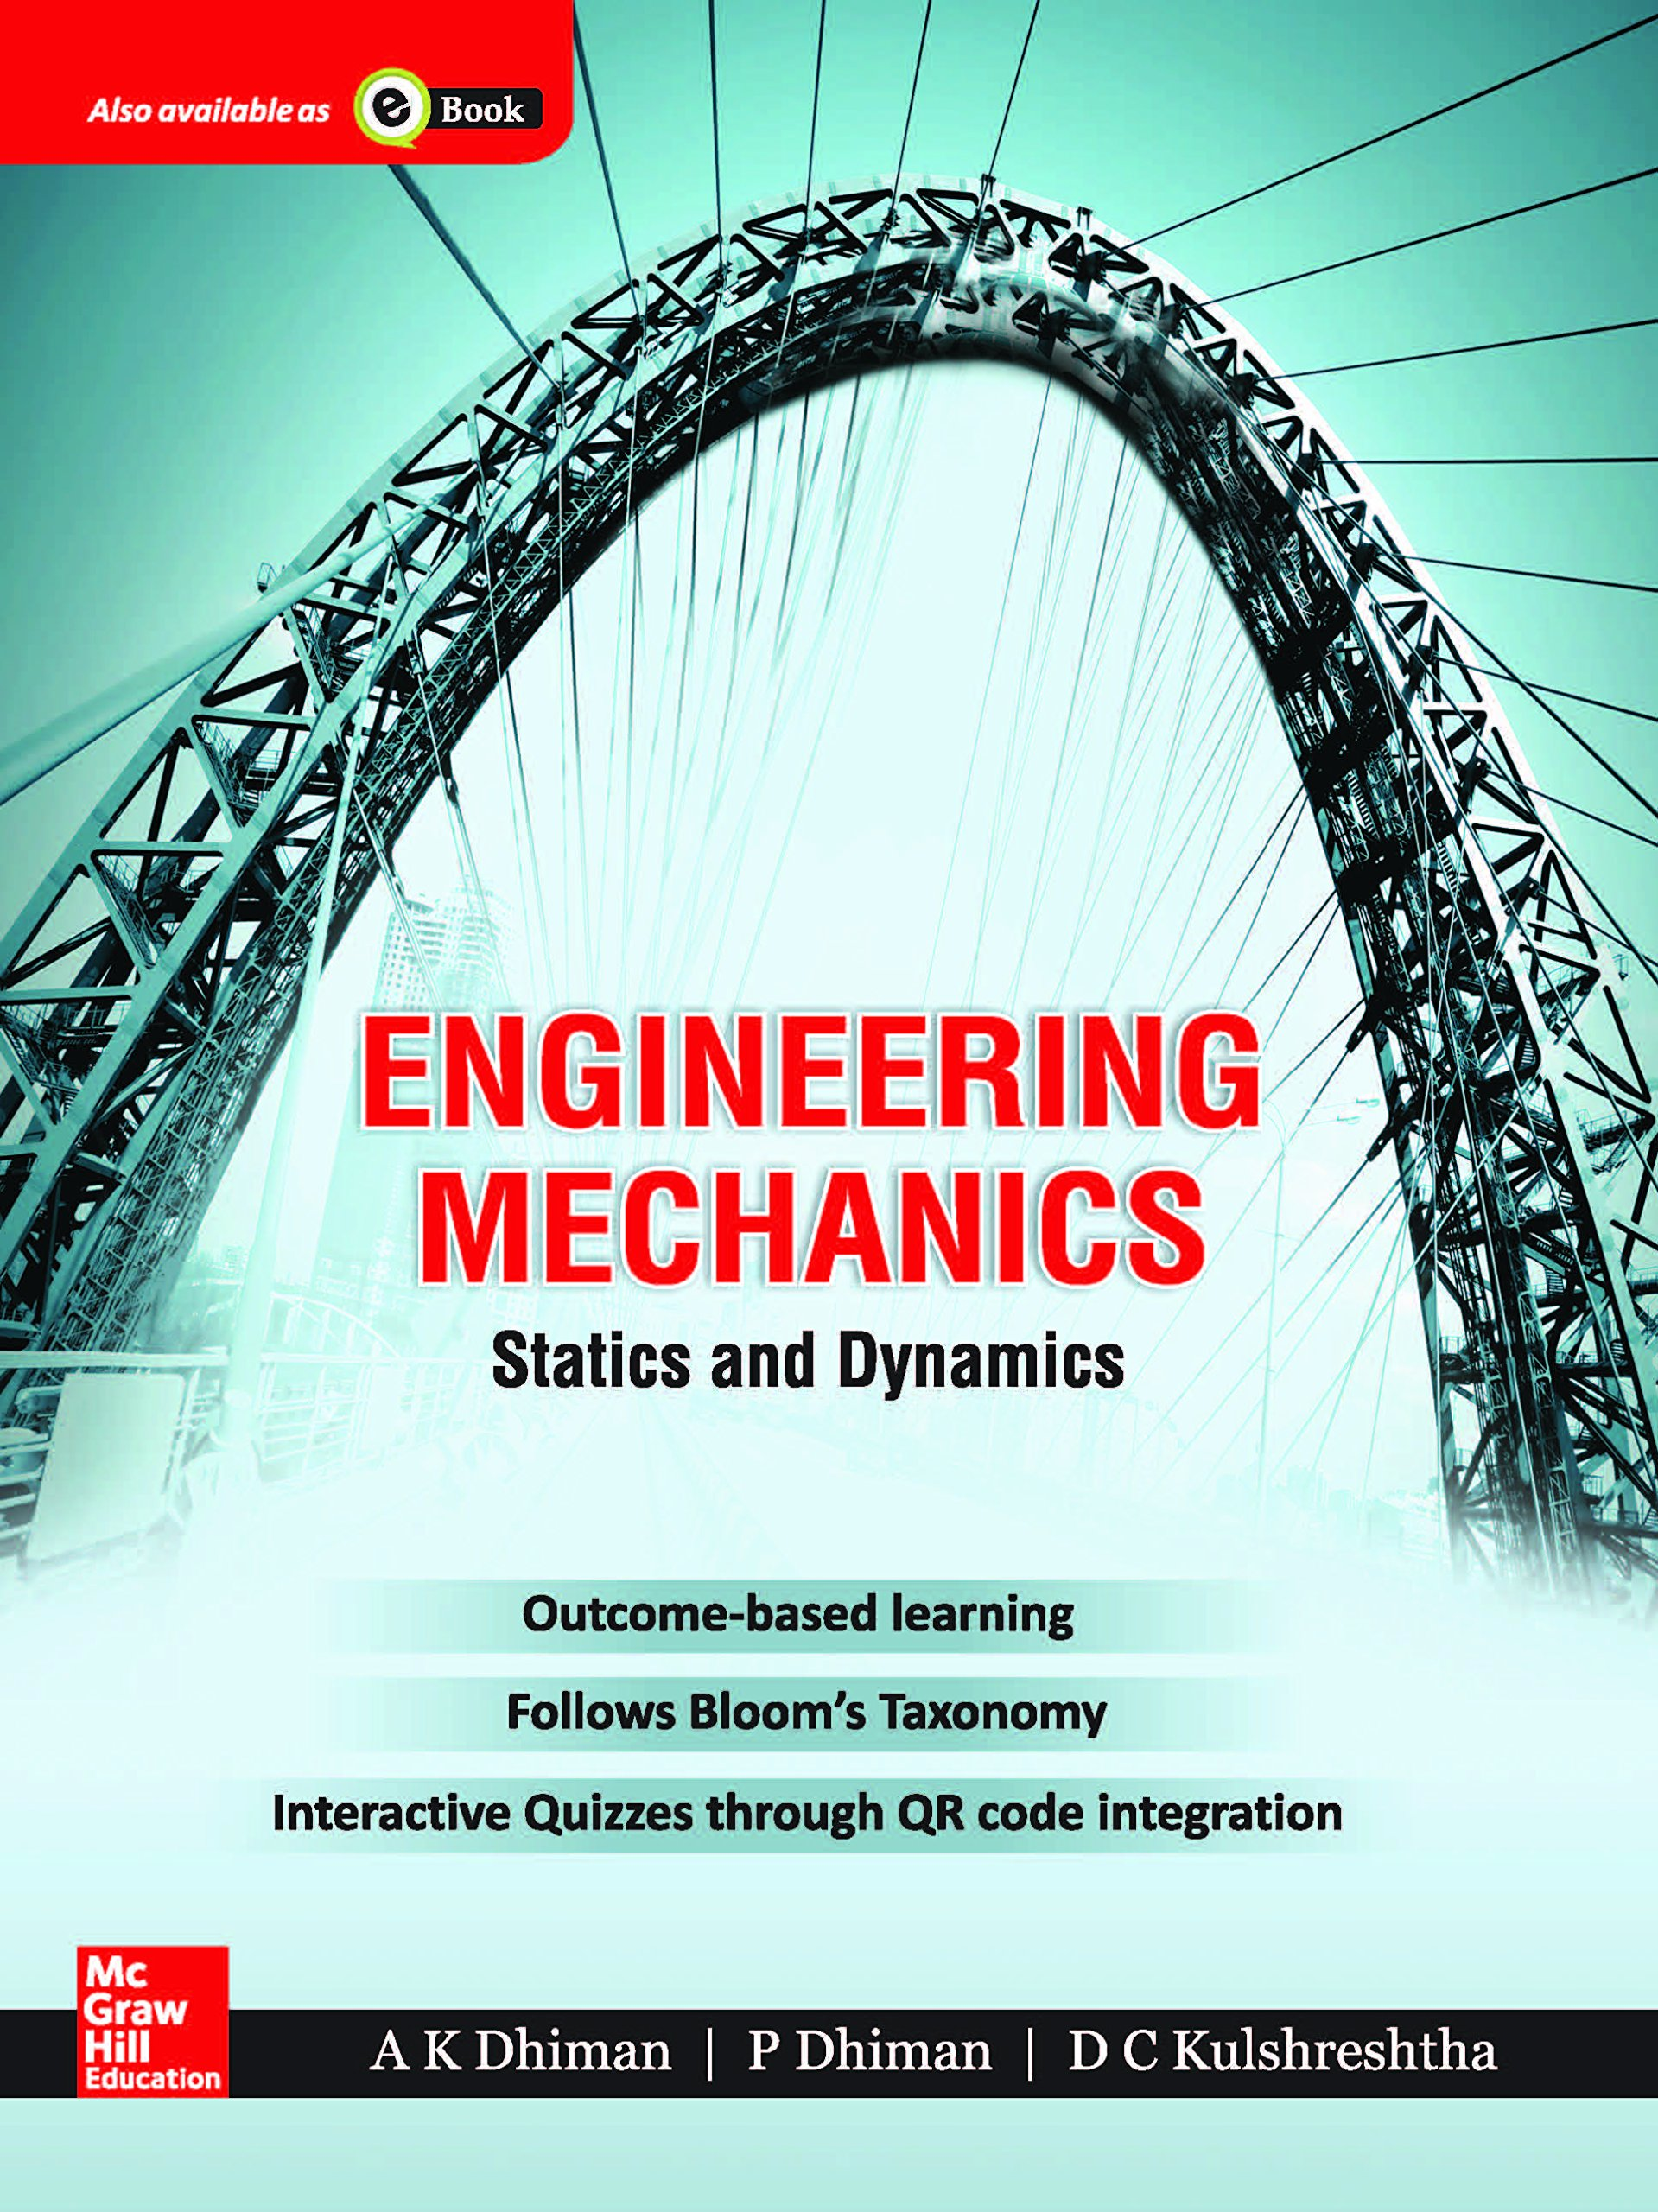 Buy Engineering Mechanics: Statics & Dynamics Book Online at Low Prices in  India | Engineering Mechanics: Statics & Dynamics Reviews & Ratings -  Amazon.in